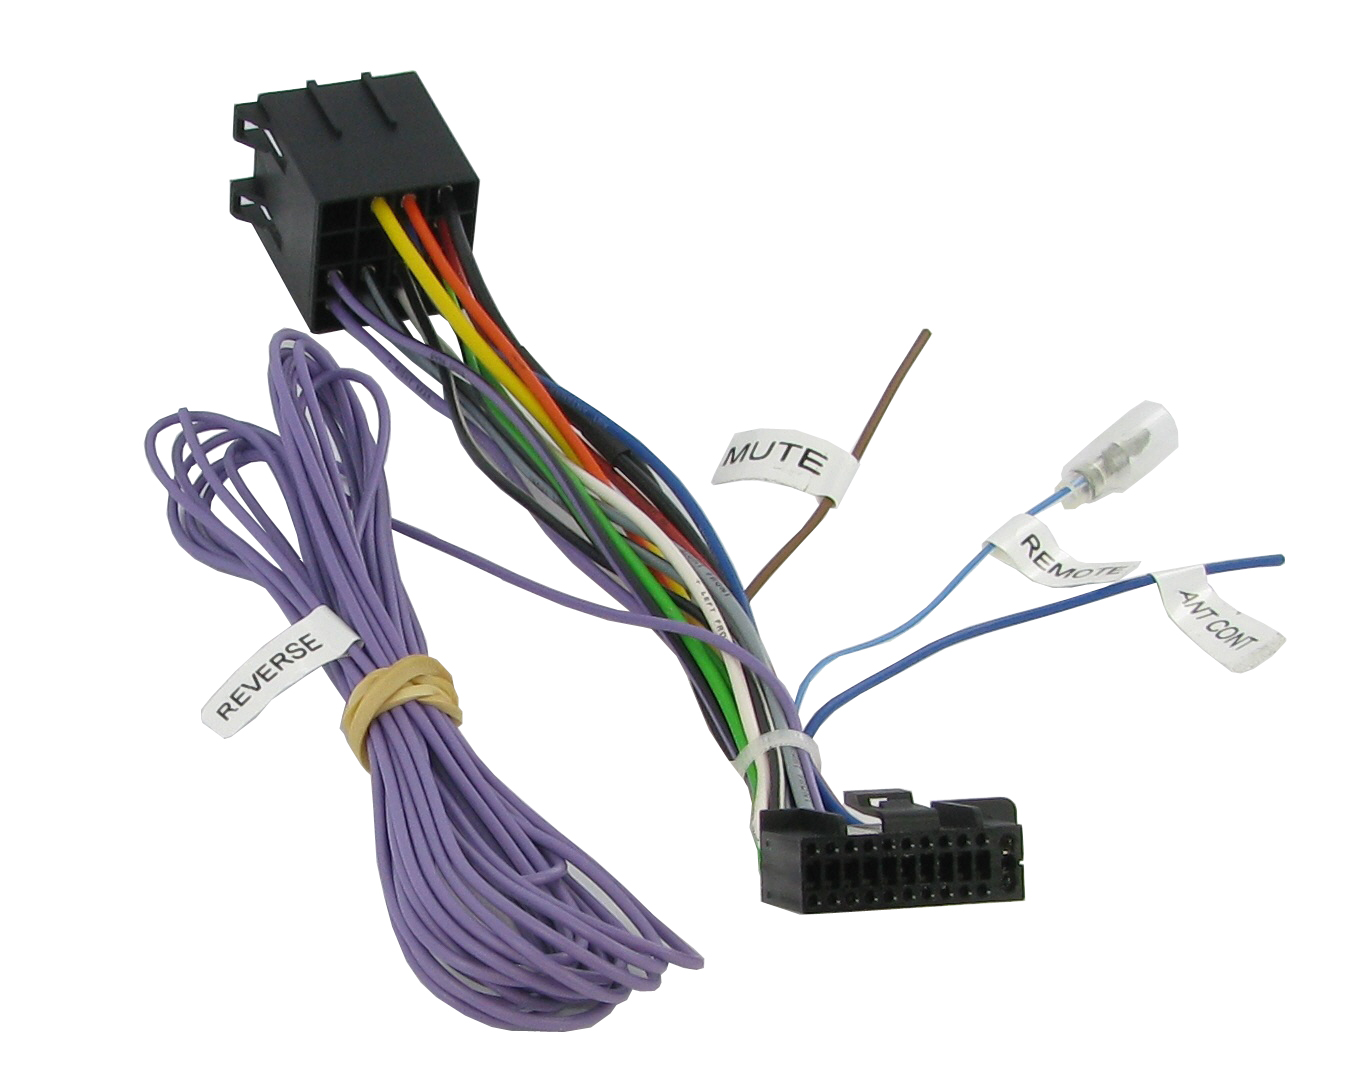 ct21kw05_s installer com kenwood category products category kenwood kdc x599 wiring harness at bayanpartner.co